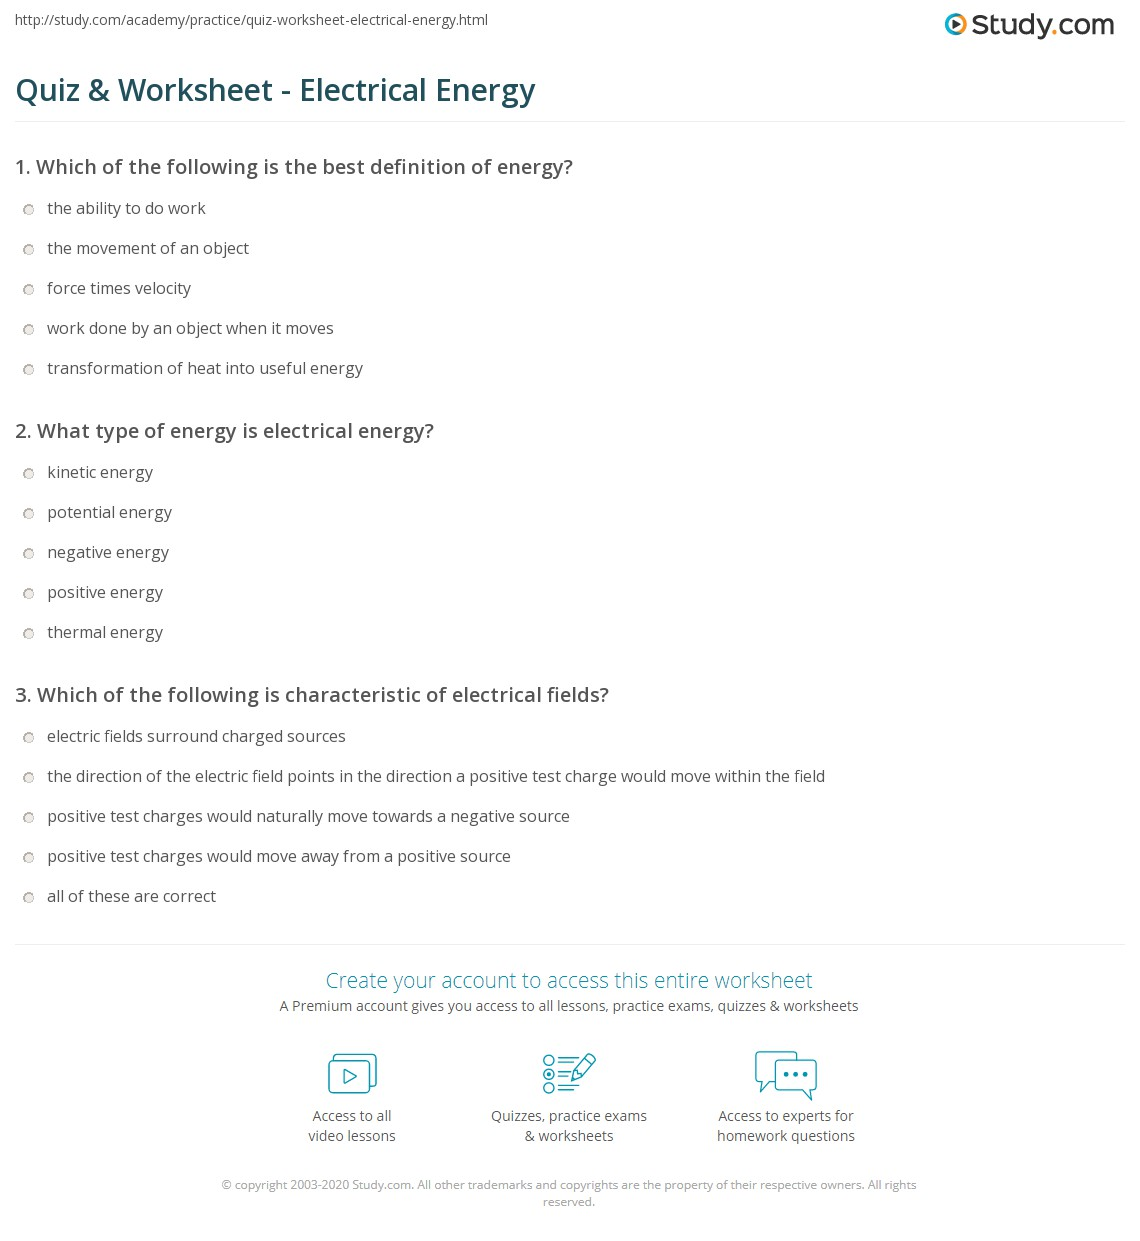 quiz & worksheet - electrical energy | study